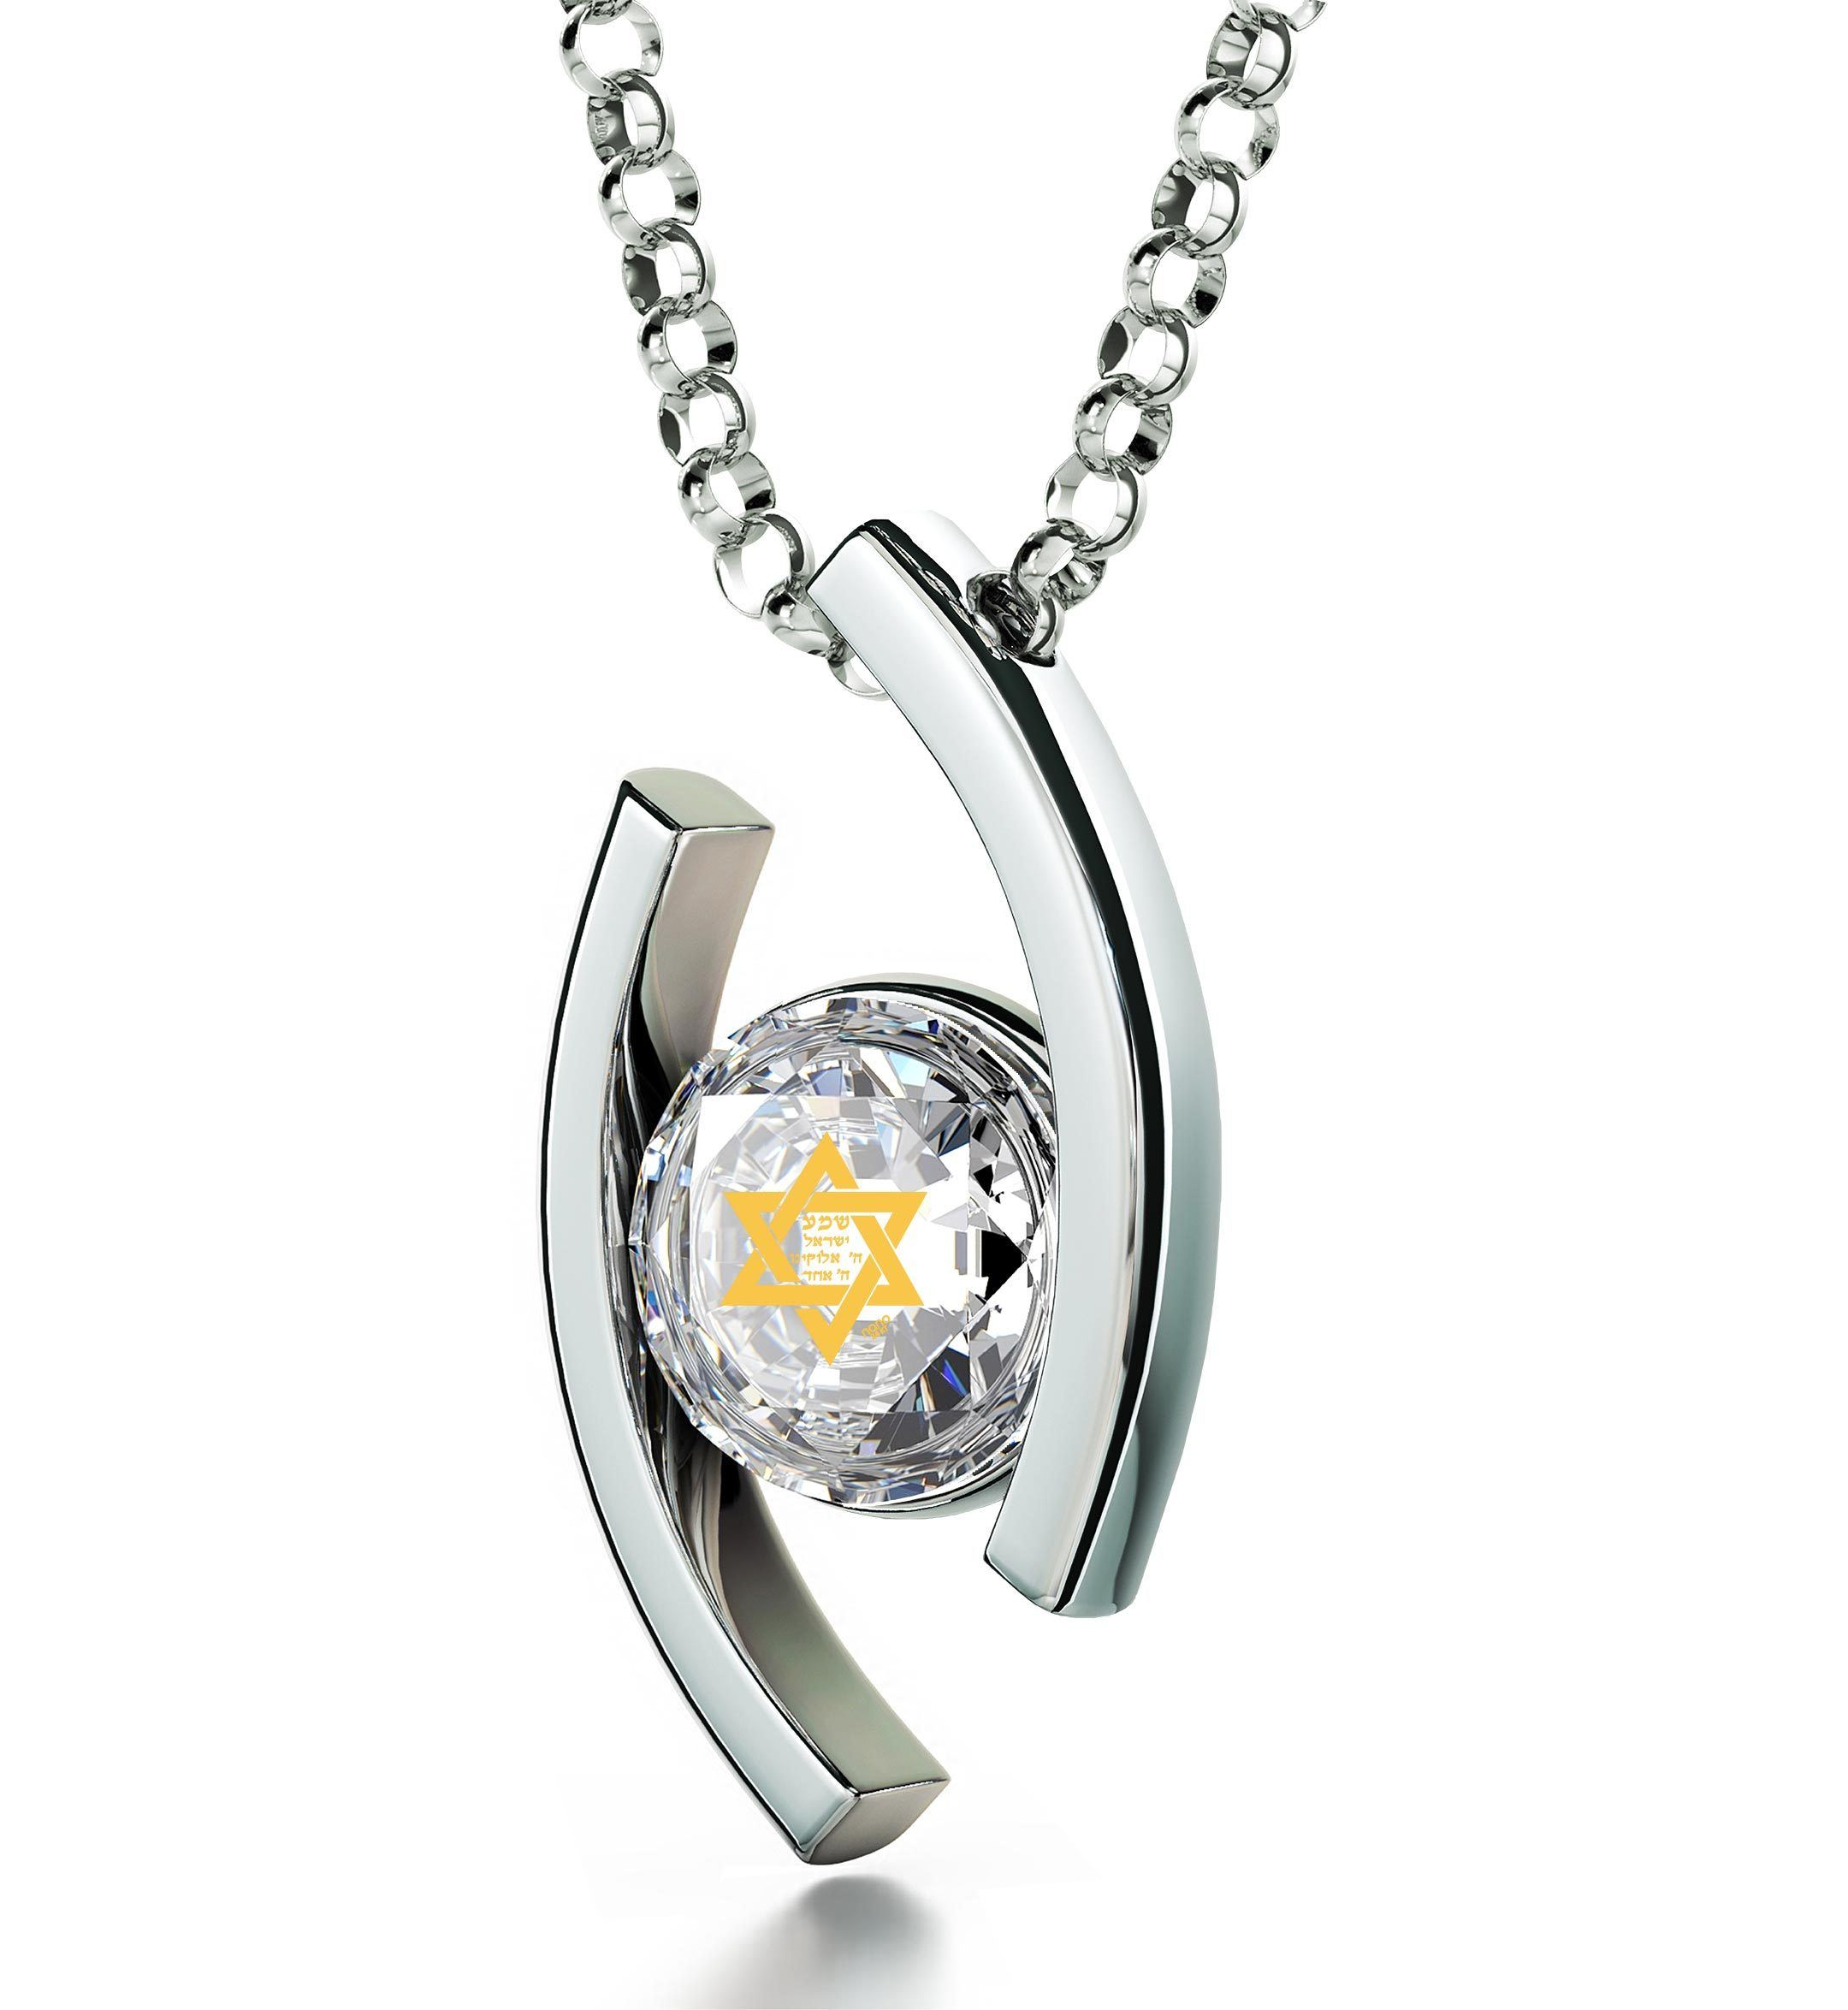 """Shema Yisrael"" Engraved in 24k, Jewish Necklace with Swarovski Crystal Stone, Israeli Jewelry Designer"